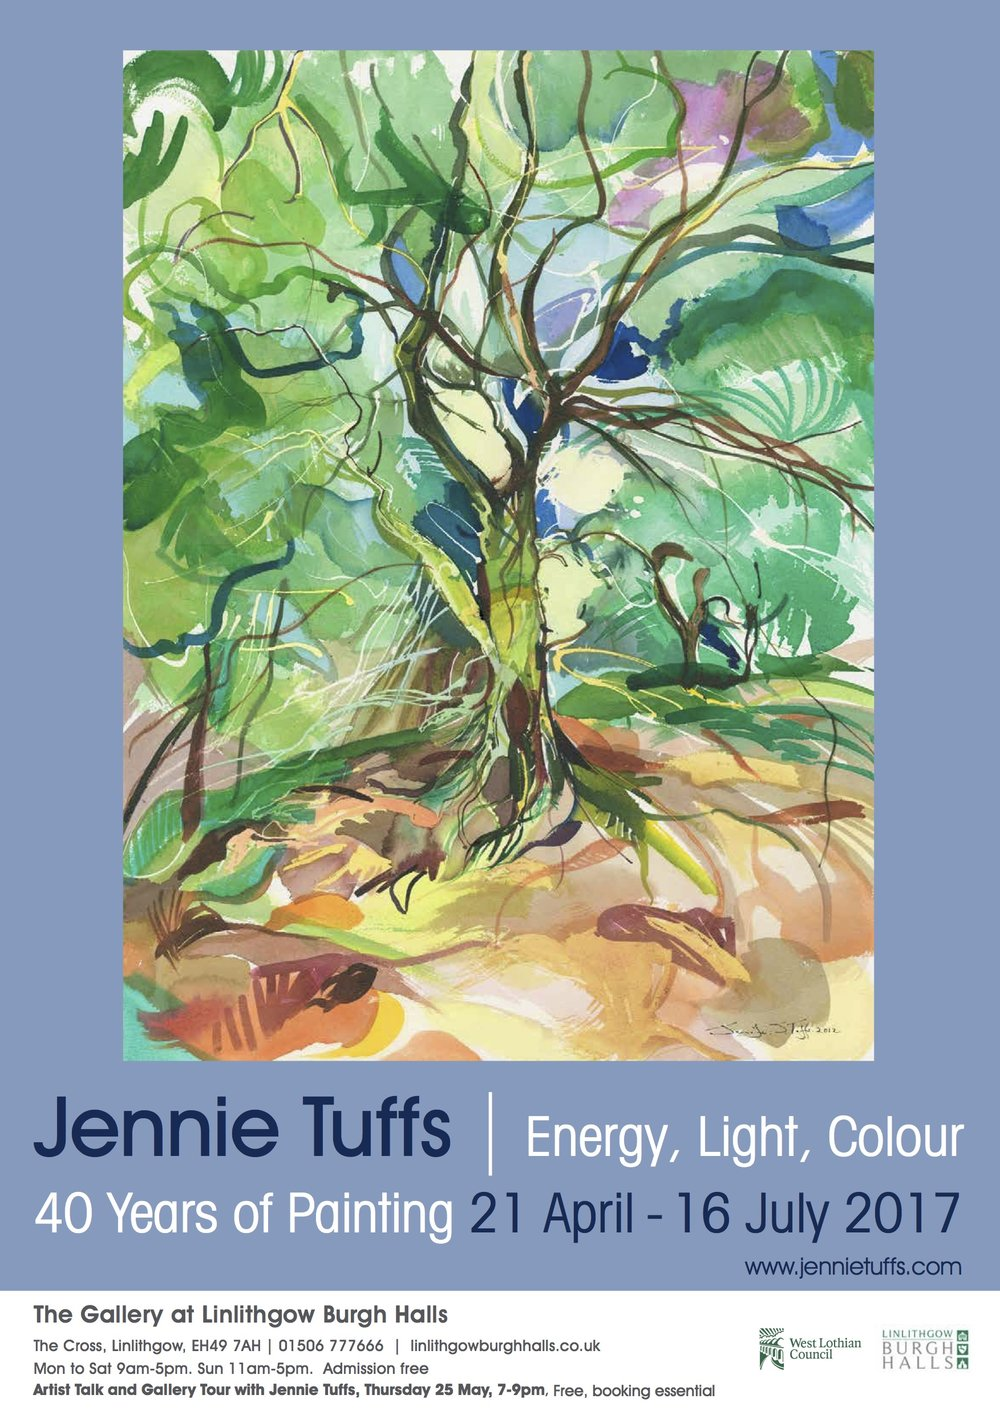 Energy, Light, Colour - ft Standing Proud © Jennie Tuffs.